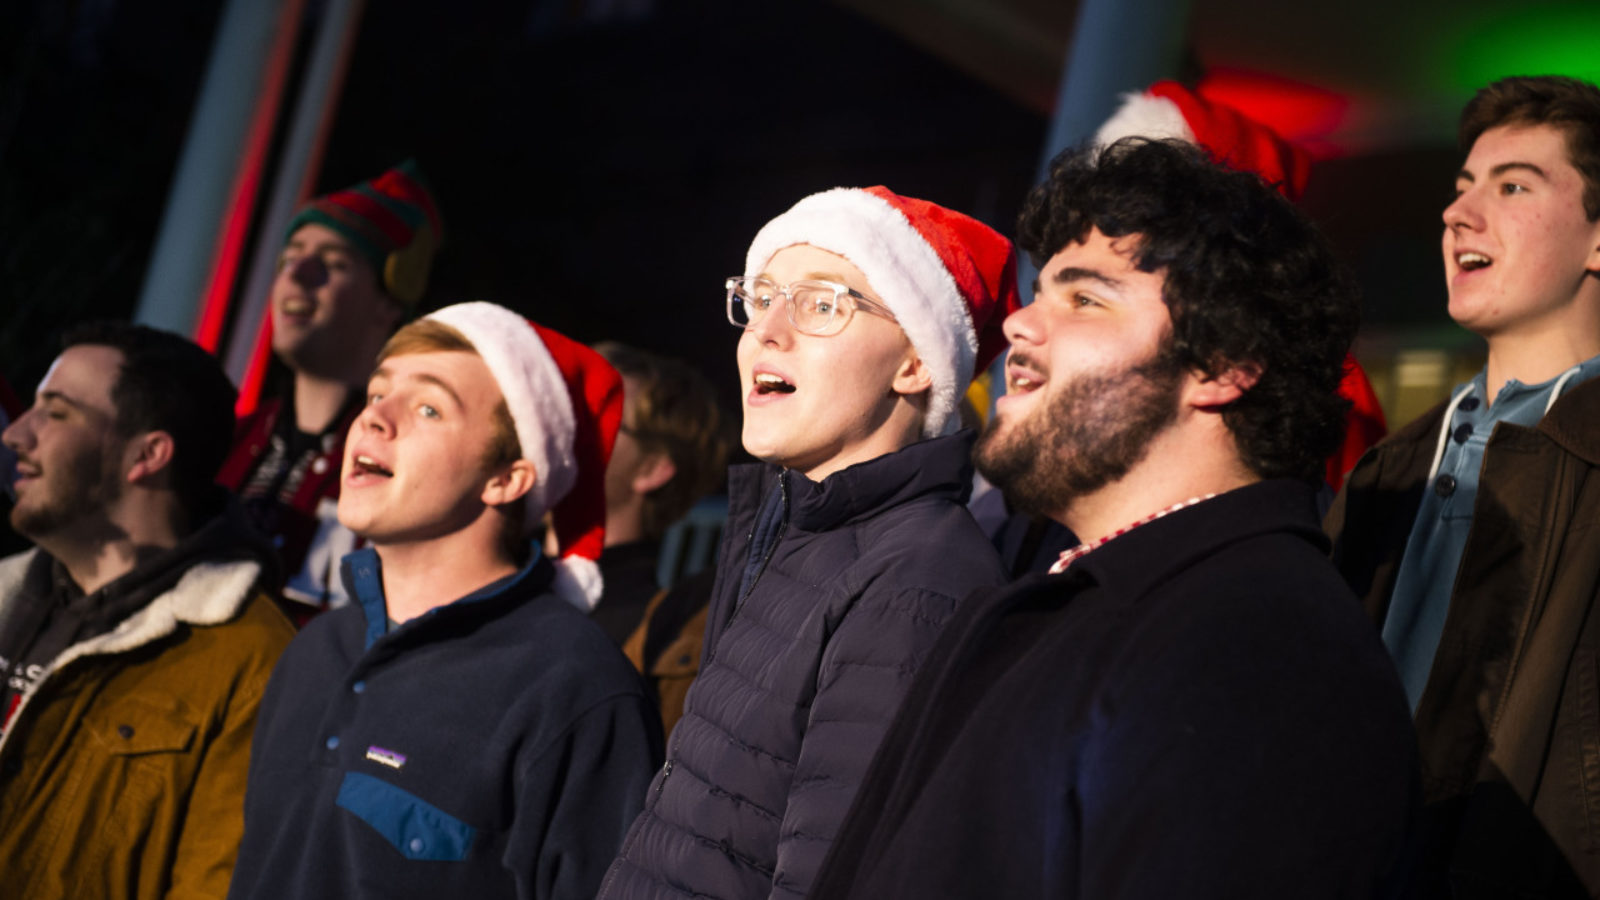 Students sing in chorus outside donning Santa hats during an evening performance.